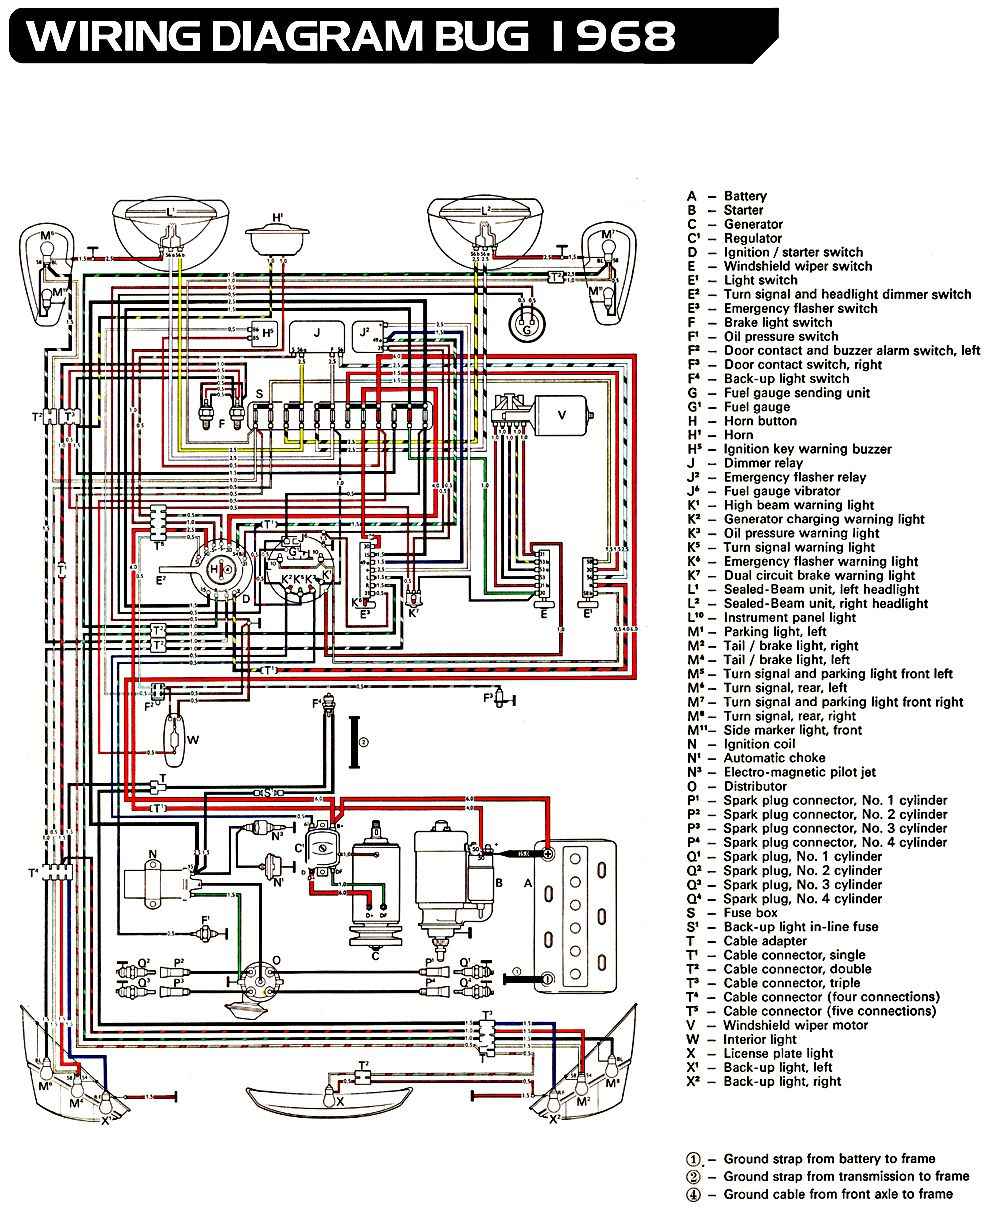 3a1908112d3826270ed5e3be362292bf vw bug ignition wiring diagram 73 vw wiring diagram free vw bug wiring diagram at gsmx.co